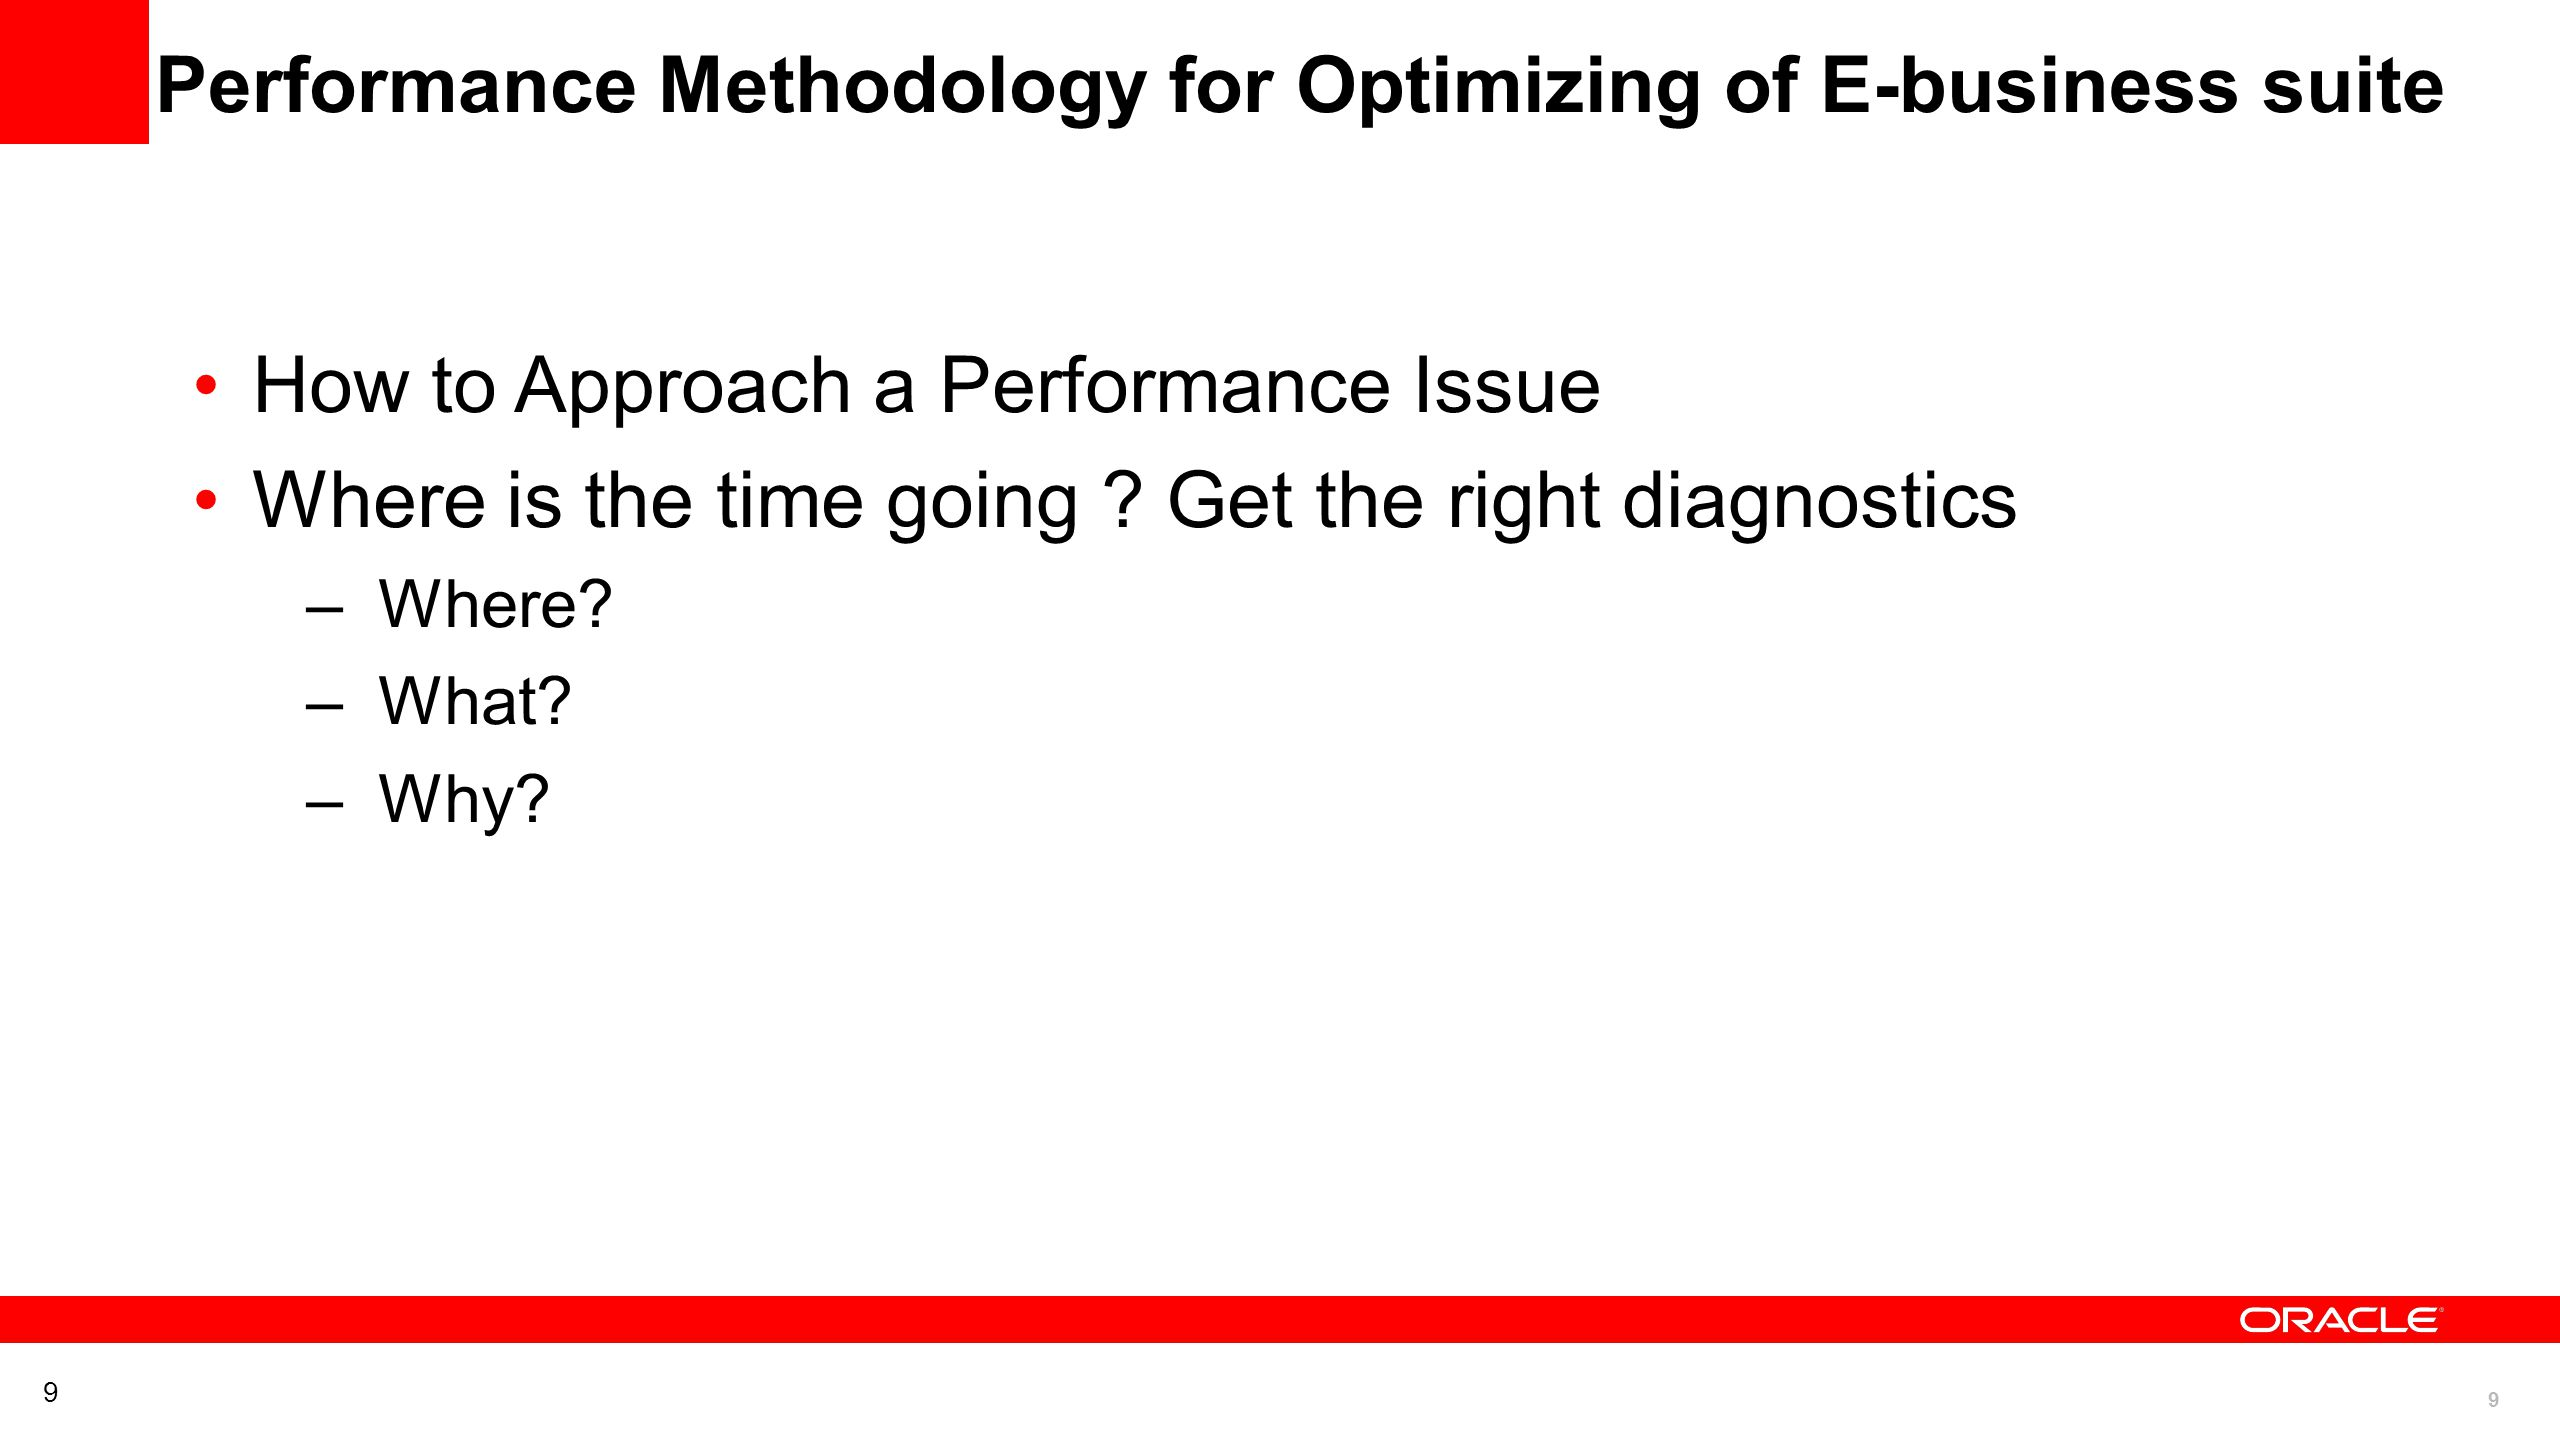 9 9 Performance Methodology for Optimizing of E-business suite How to Approach a Performance Issue Where is the time going ? Get the right diagnostics